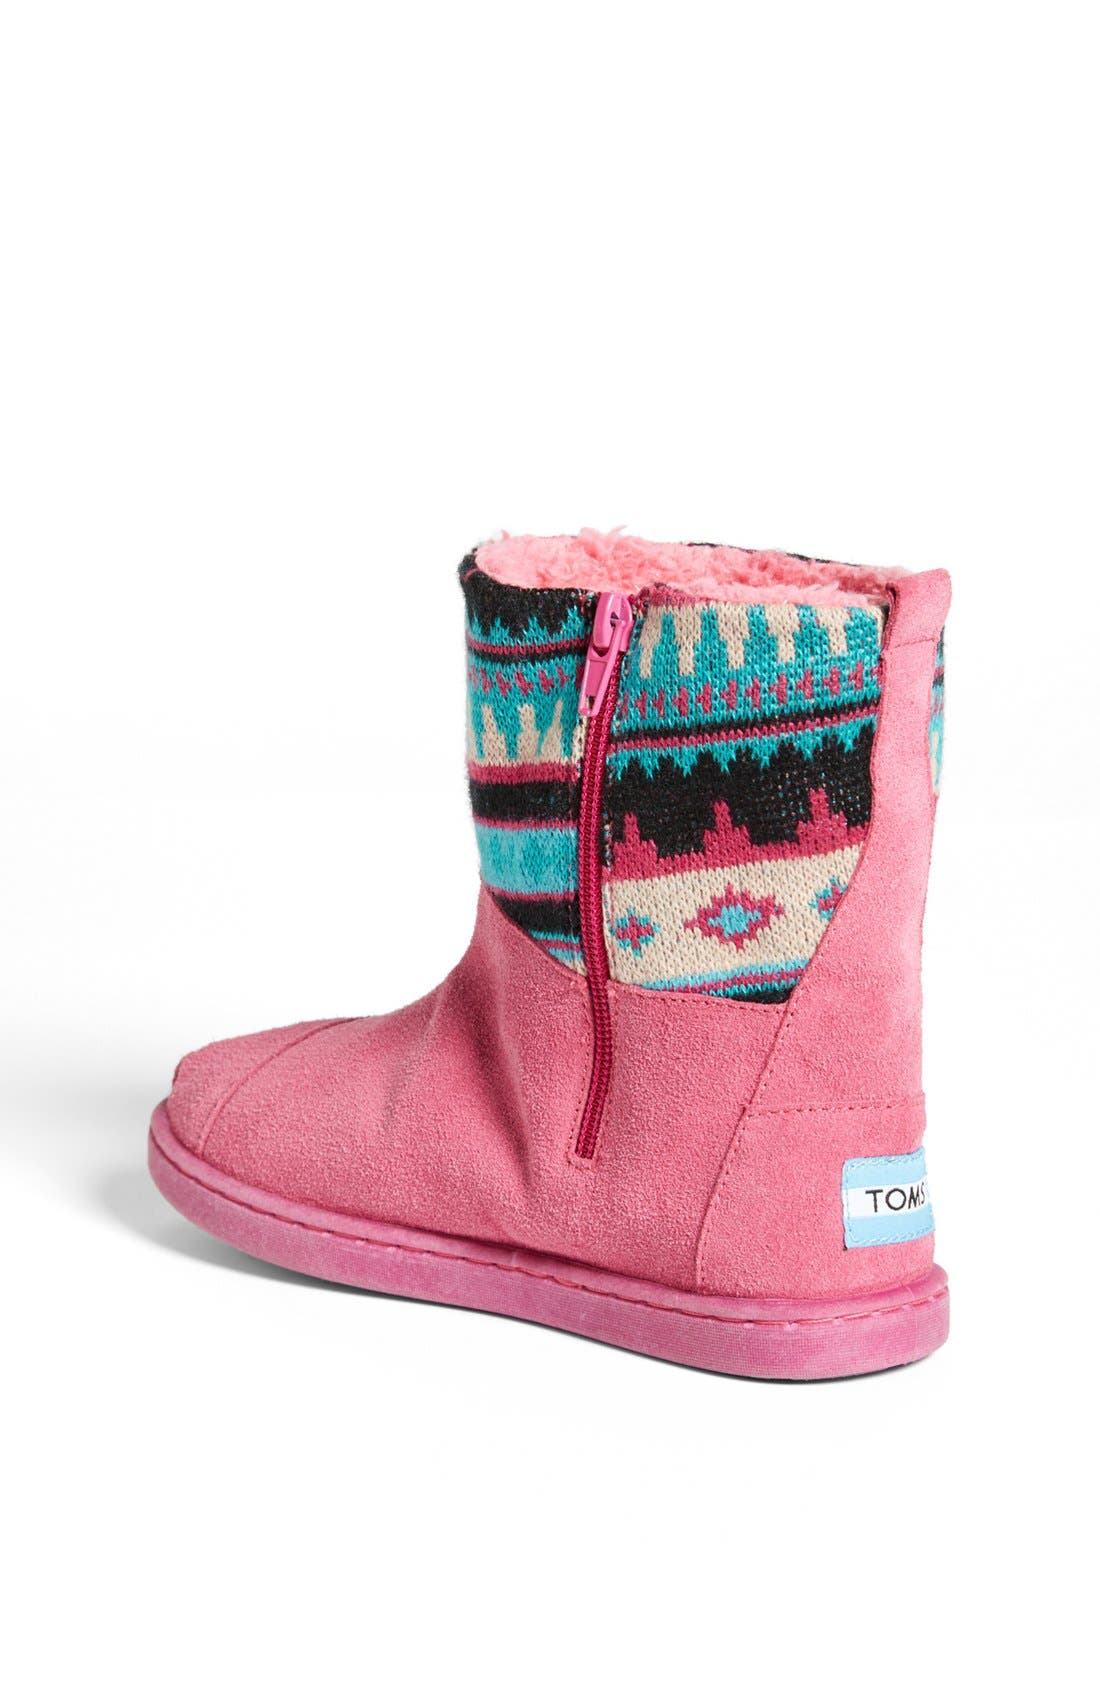 Alternate Image 2  - TOMS 'Nepal - Youth' Knit Shaft Boot (Toddler, Little Kid & Big Kid)